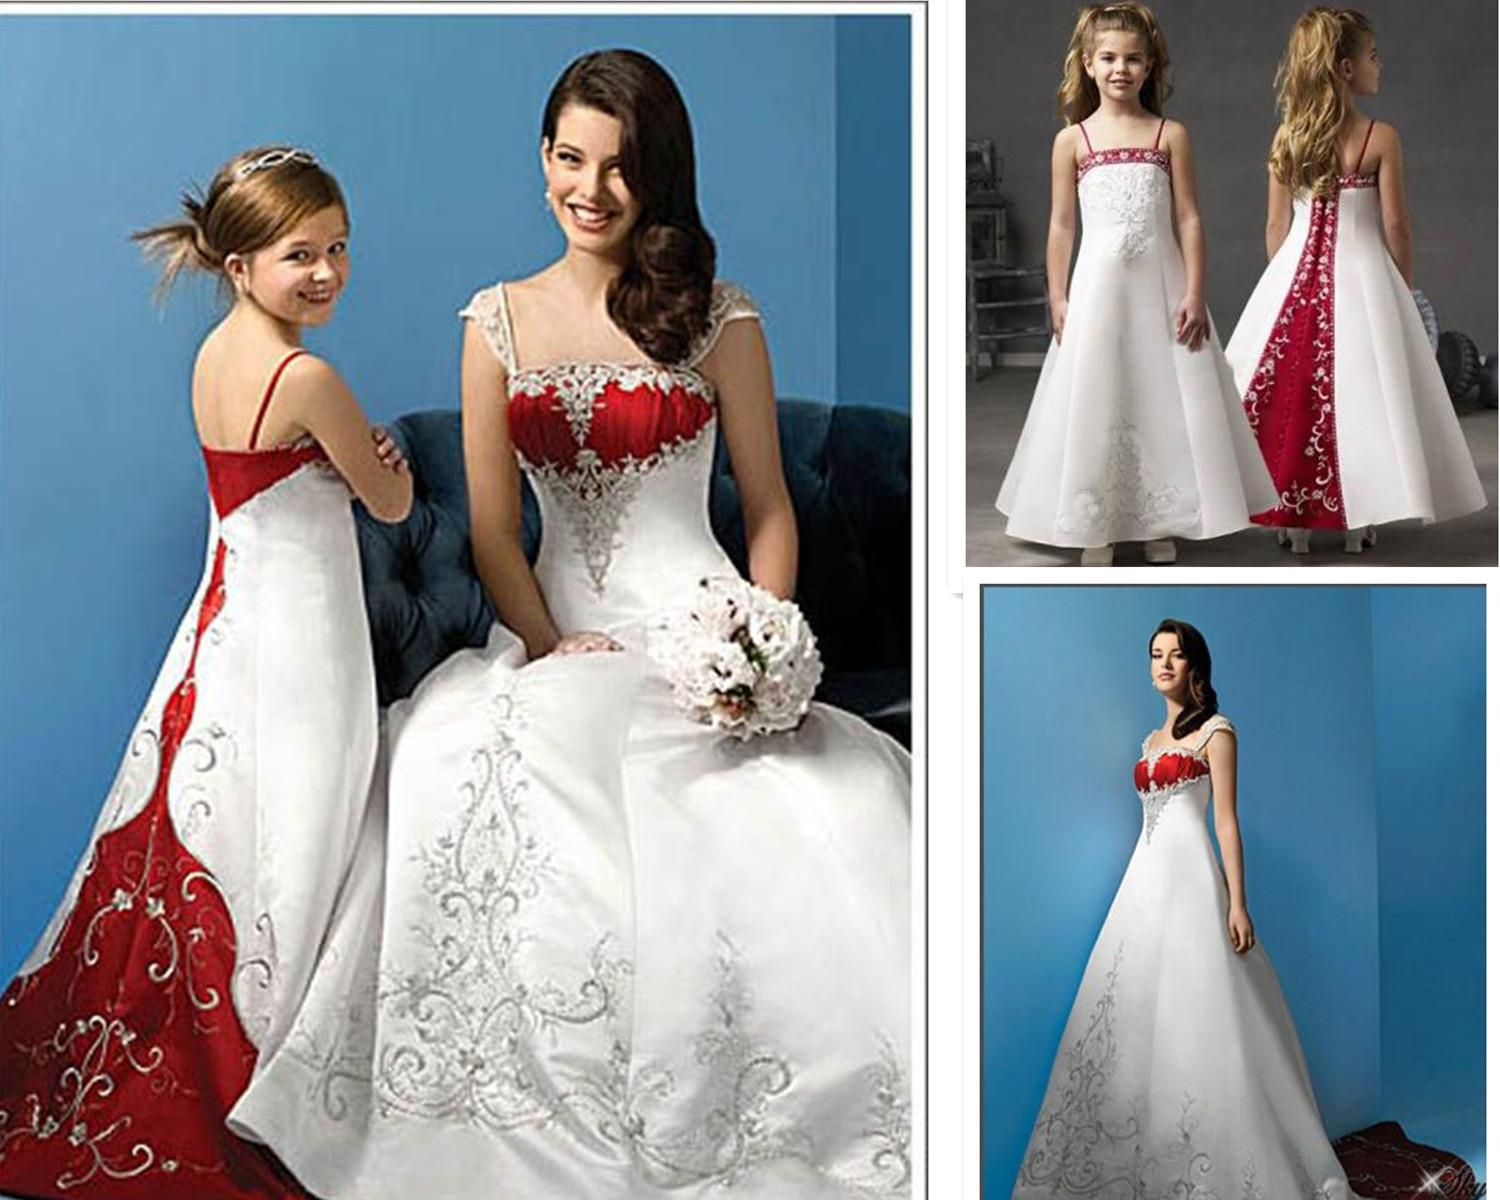 Cheap Wedding Dresses Plus Size Under 100 Dollars: Discount Exquisite White And Red Wedding Dress Mother